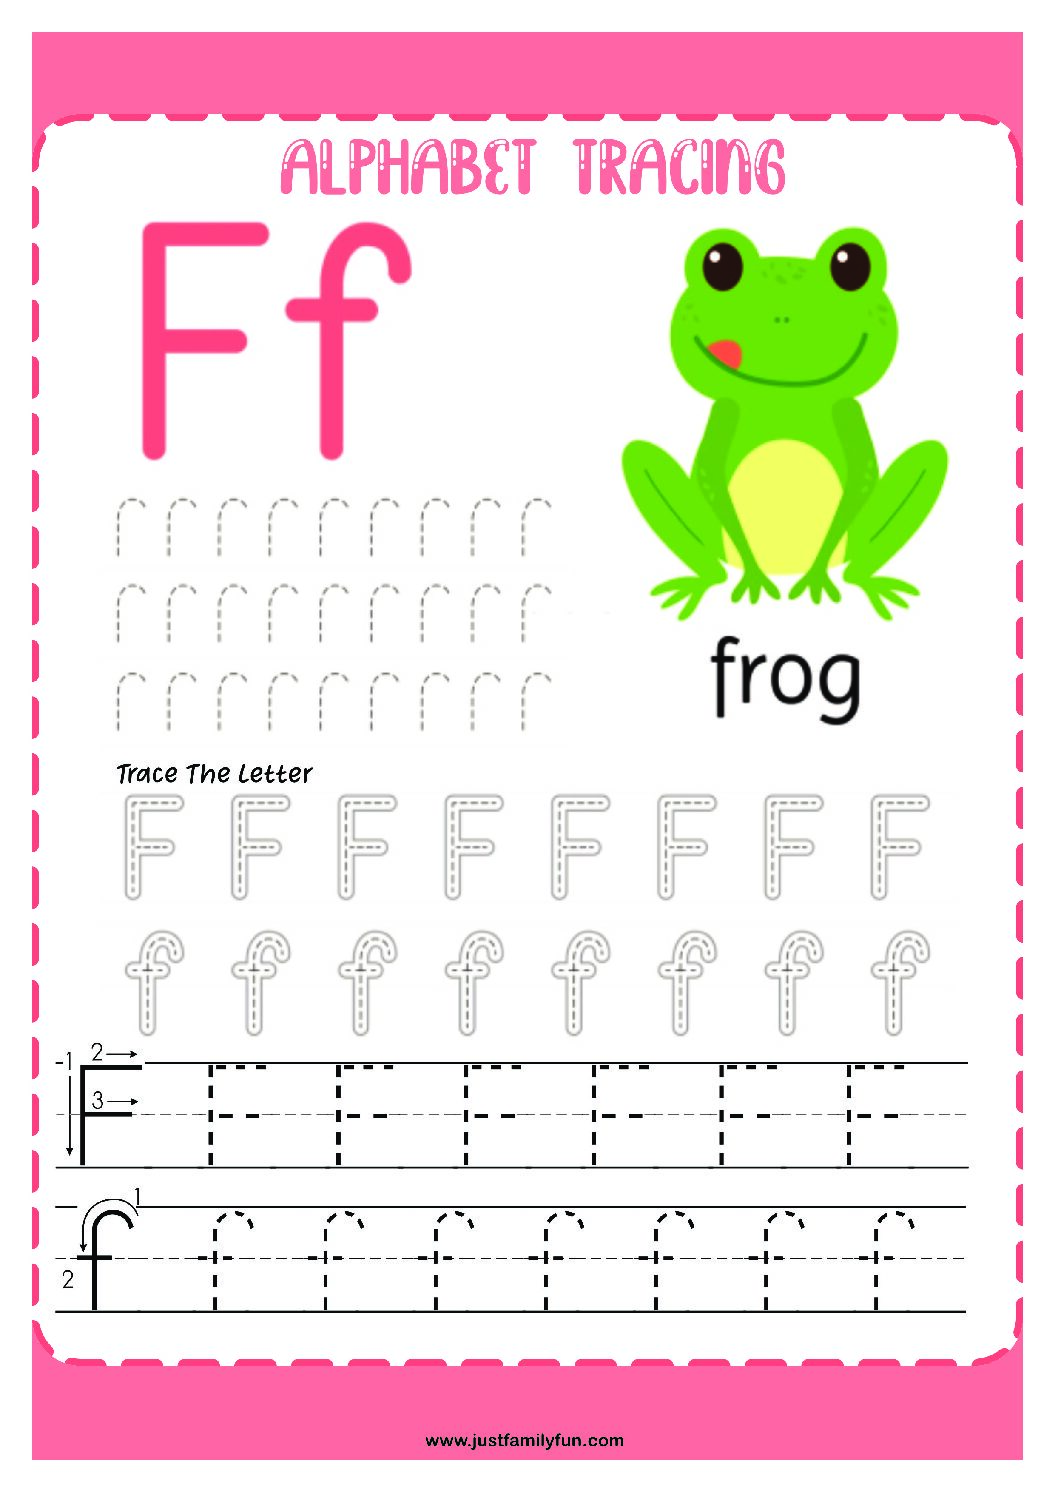 Alphabets_6-pdf Free Printable Trace The Alphabet Worksheets for Kids.